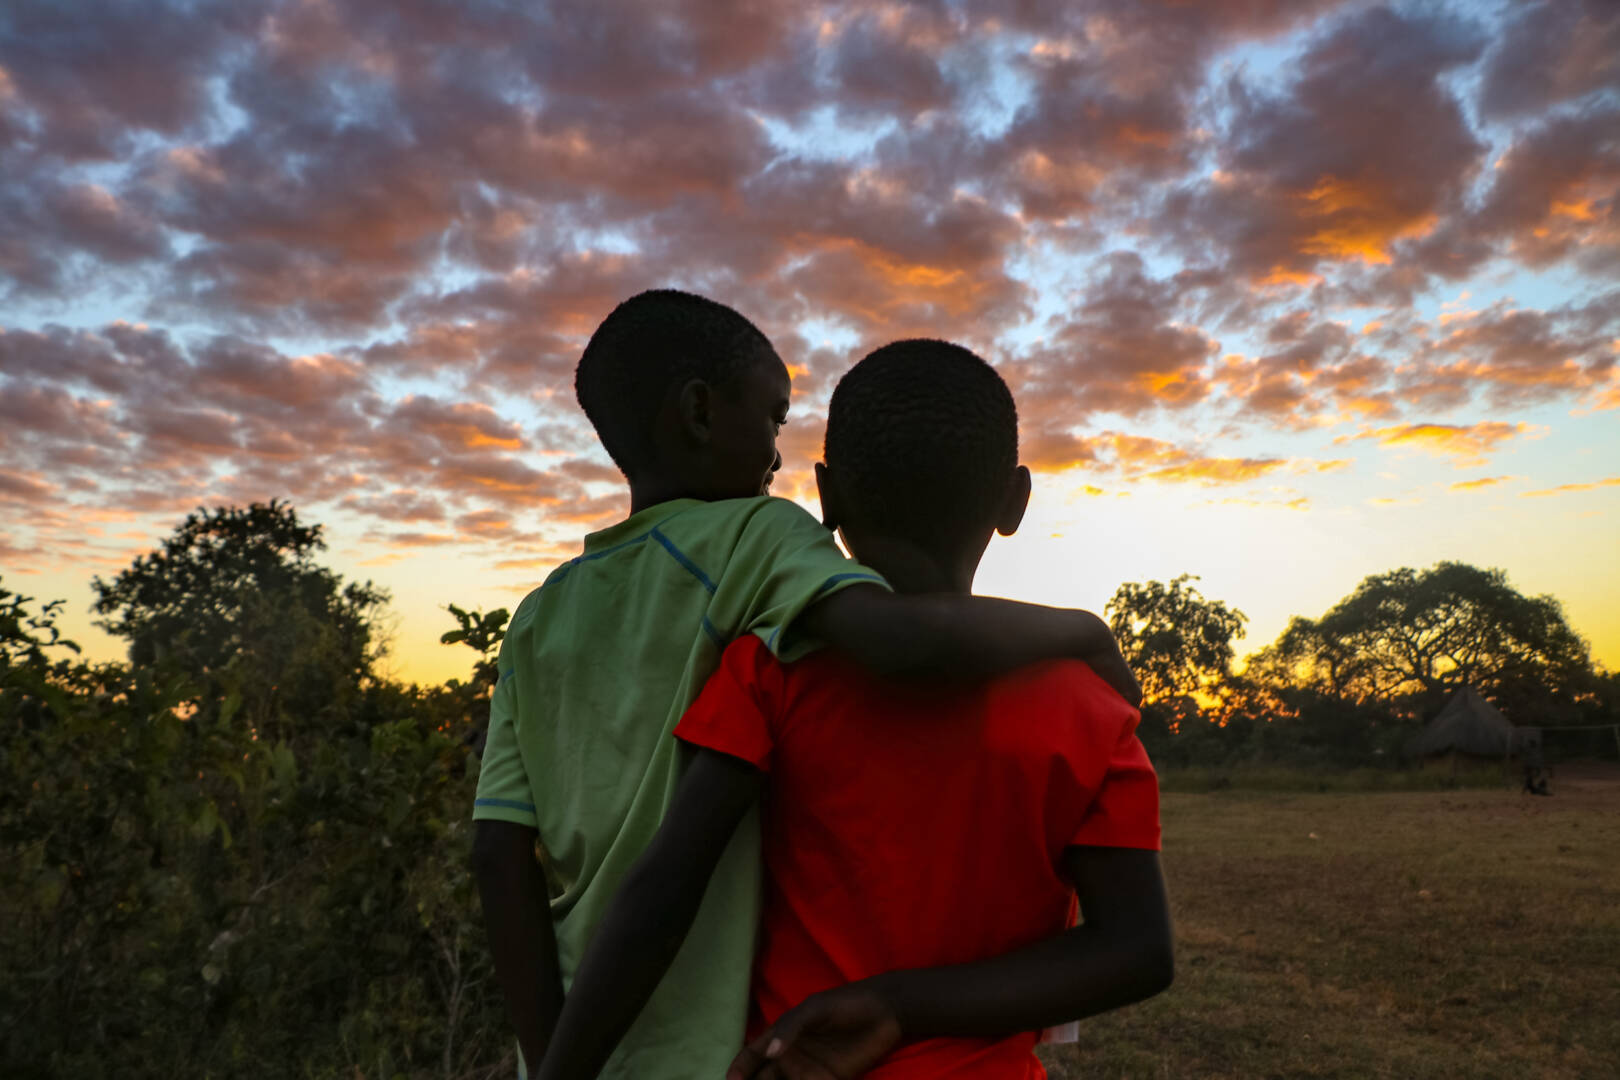 Brothers Francis and Billy gaze into a brighter future thanks to World Vision's Gift Catalog goats that have transformed their family's lives.